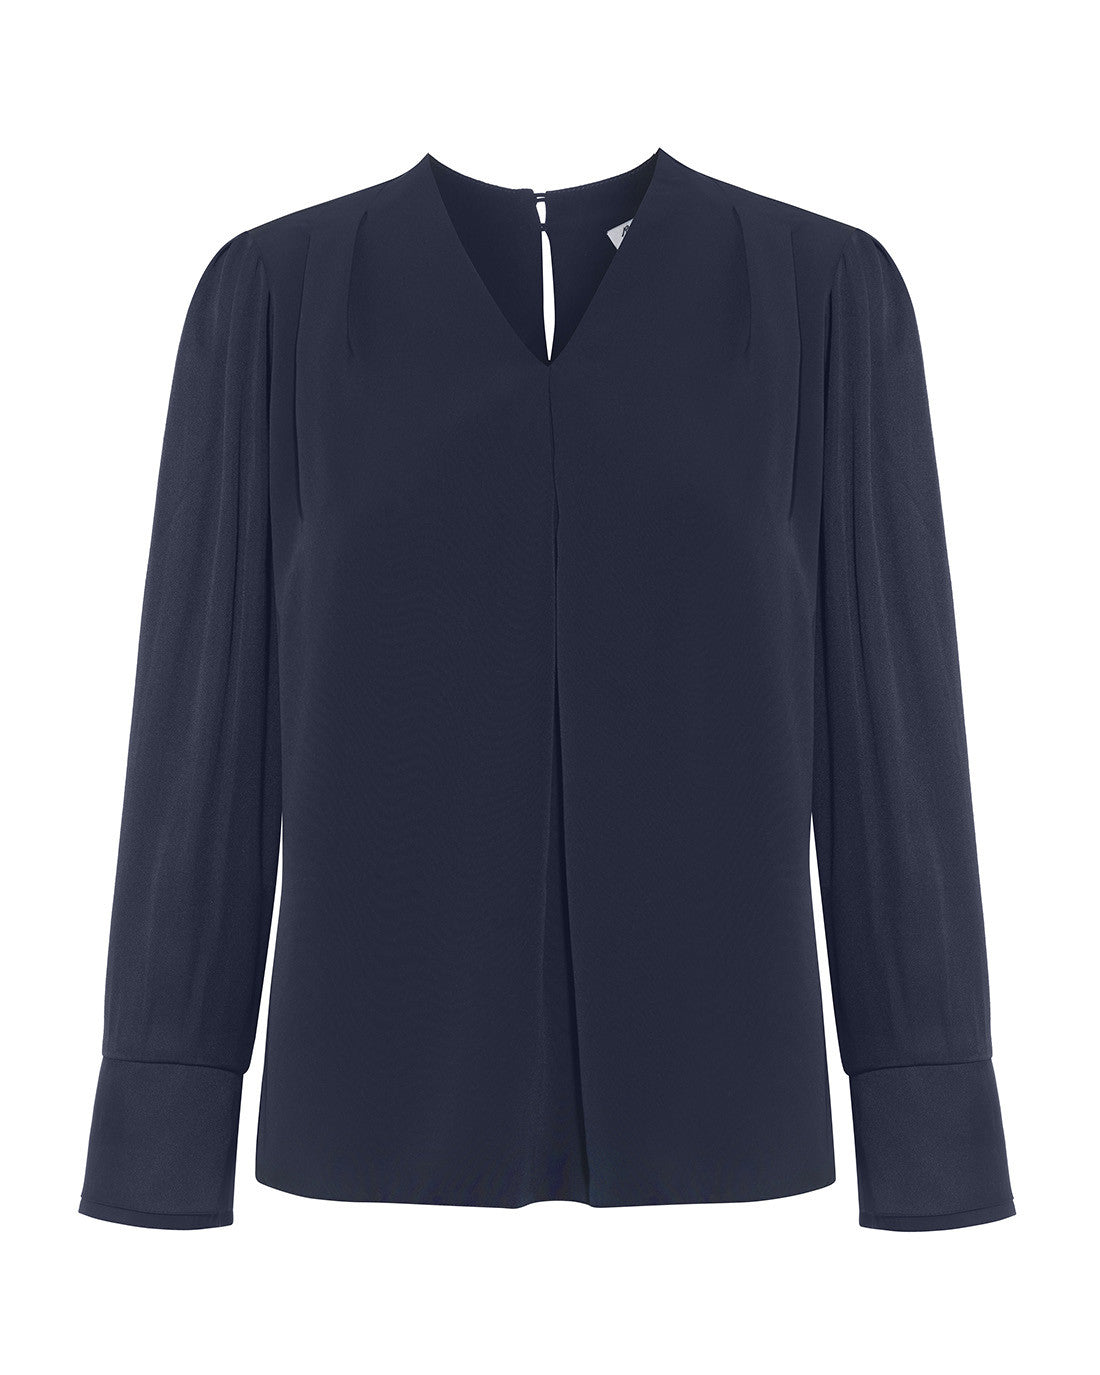 V-neck satin drape blouse with double cuffs for work navy